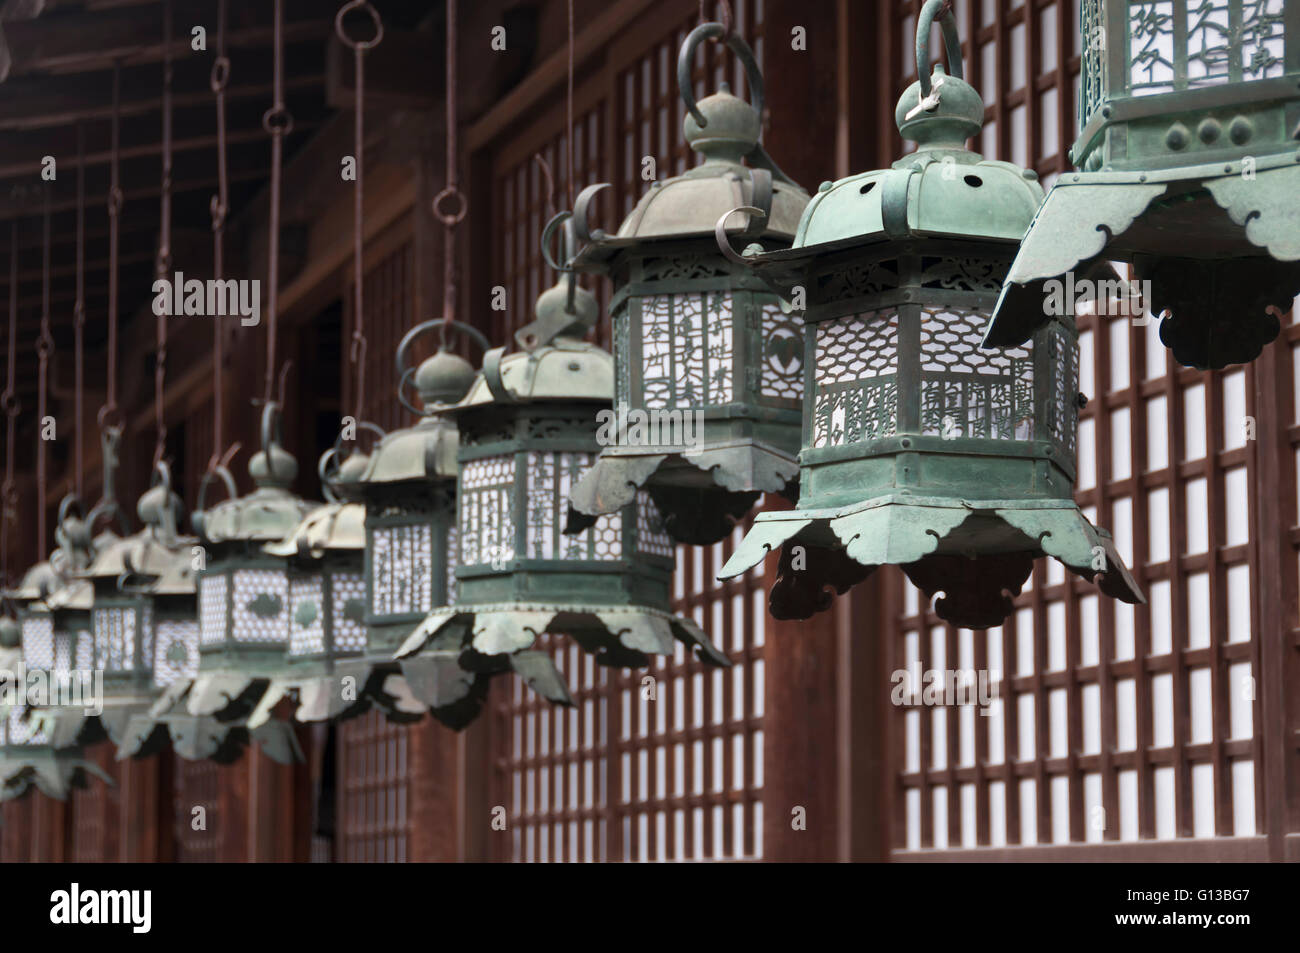 Japanese metal lanterns in a row - Stock Image